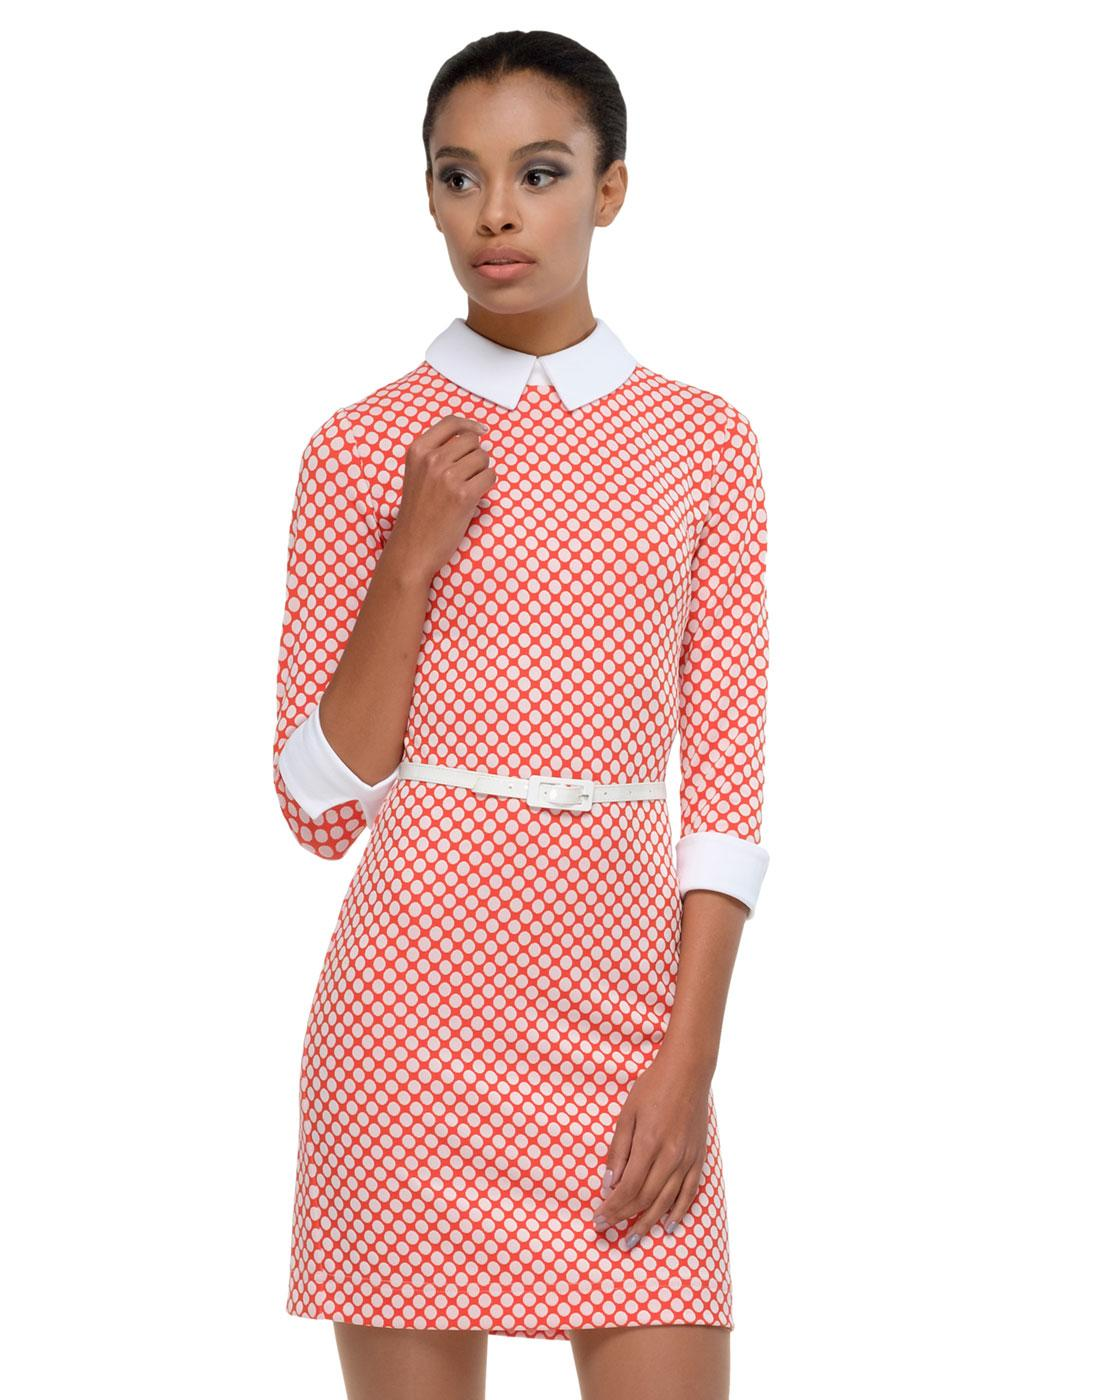 MARMALADE Retro 60s Polka Dot Dress with Sleeves